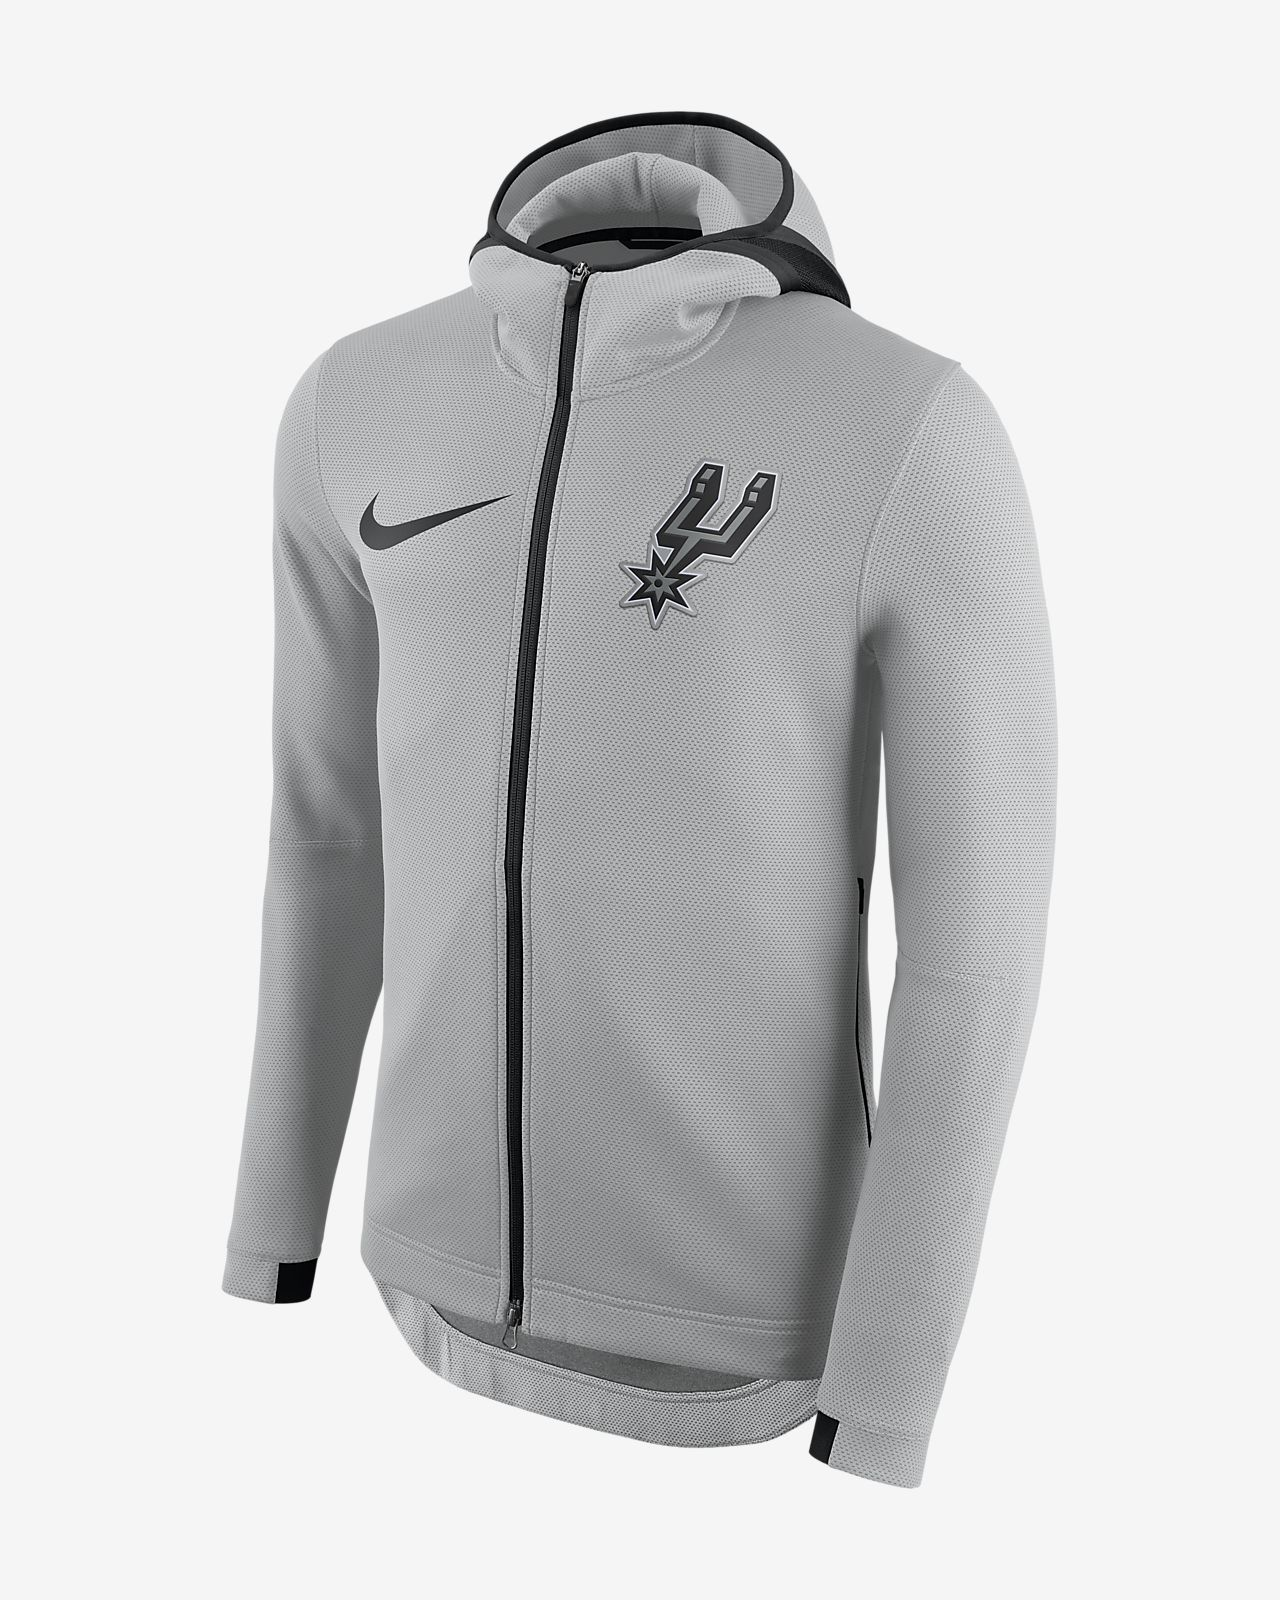 41c7881be496 San Antonio Spurs Nike Therma Flex Showtime Men s NBA Hoodie. Nike.com